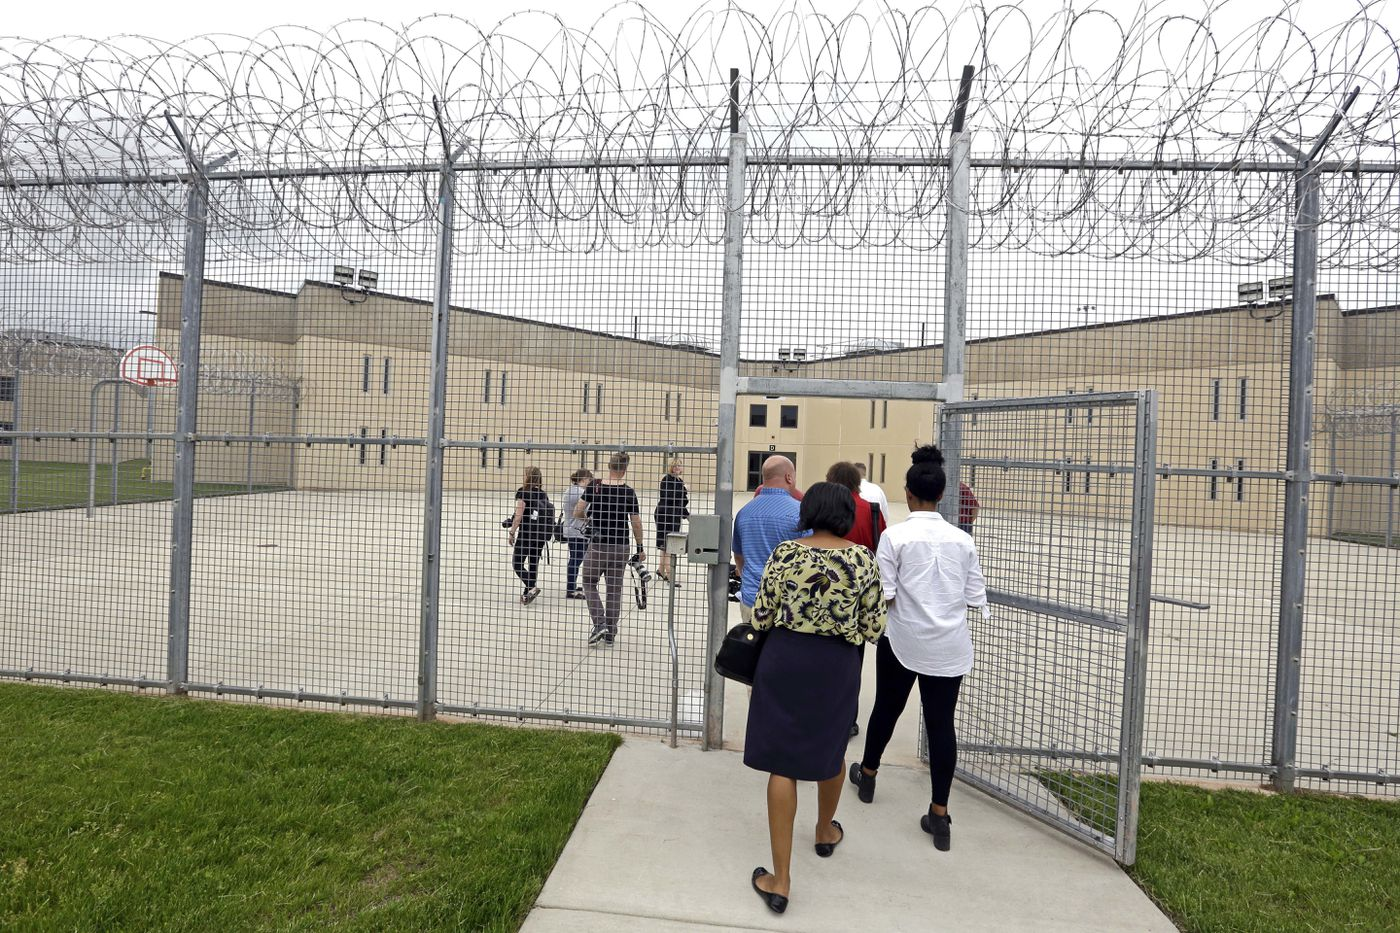 Current Pa. inmate: Punitive policy changes make it clear that staff lives are more important than ours | Opinion